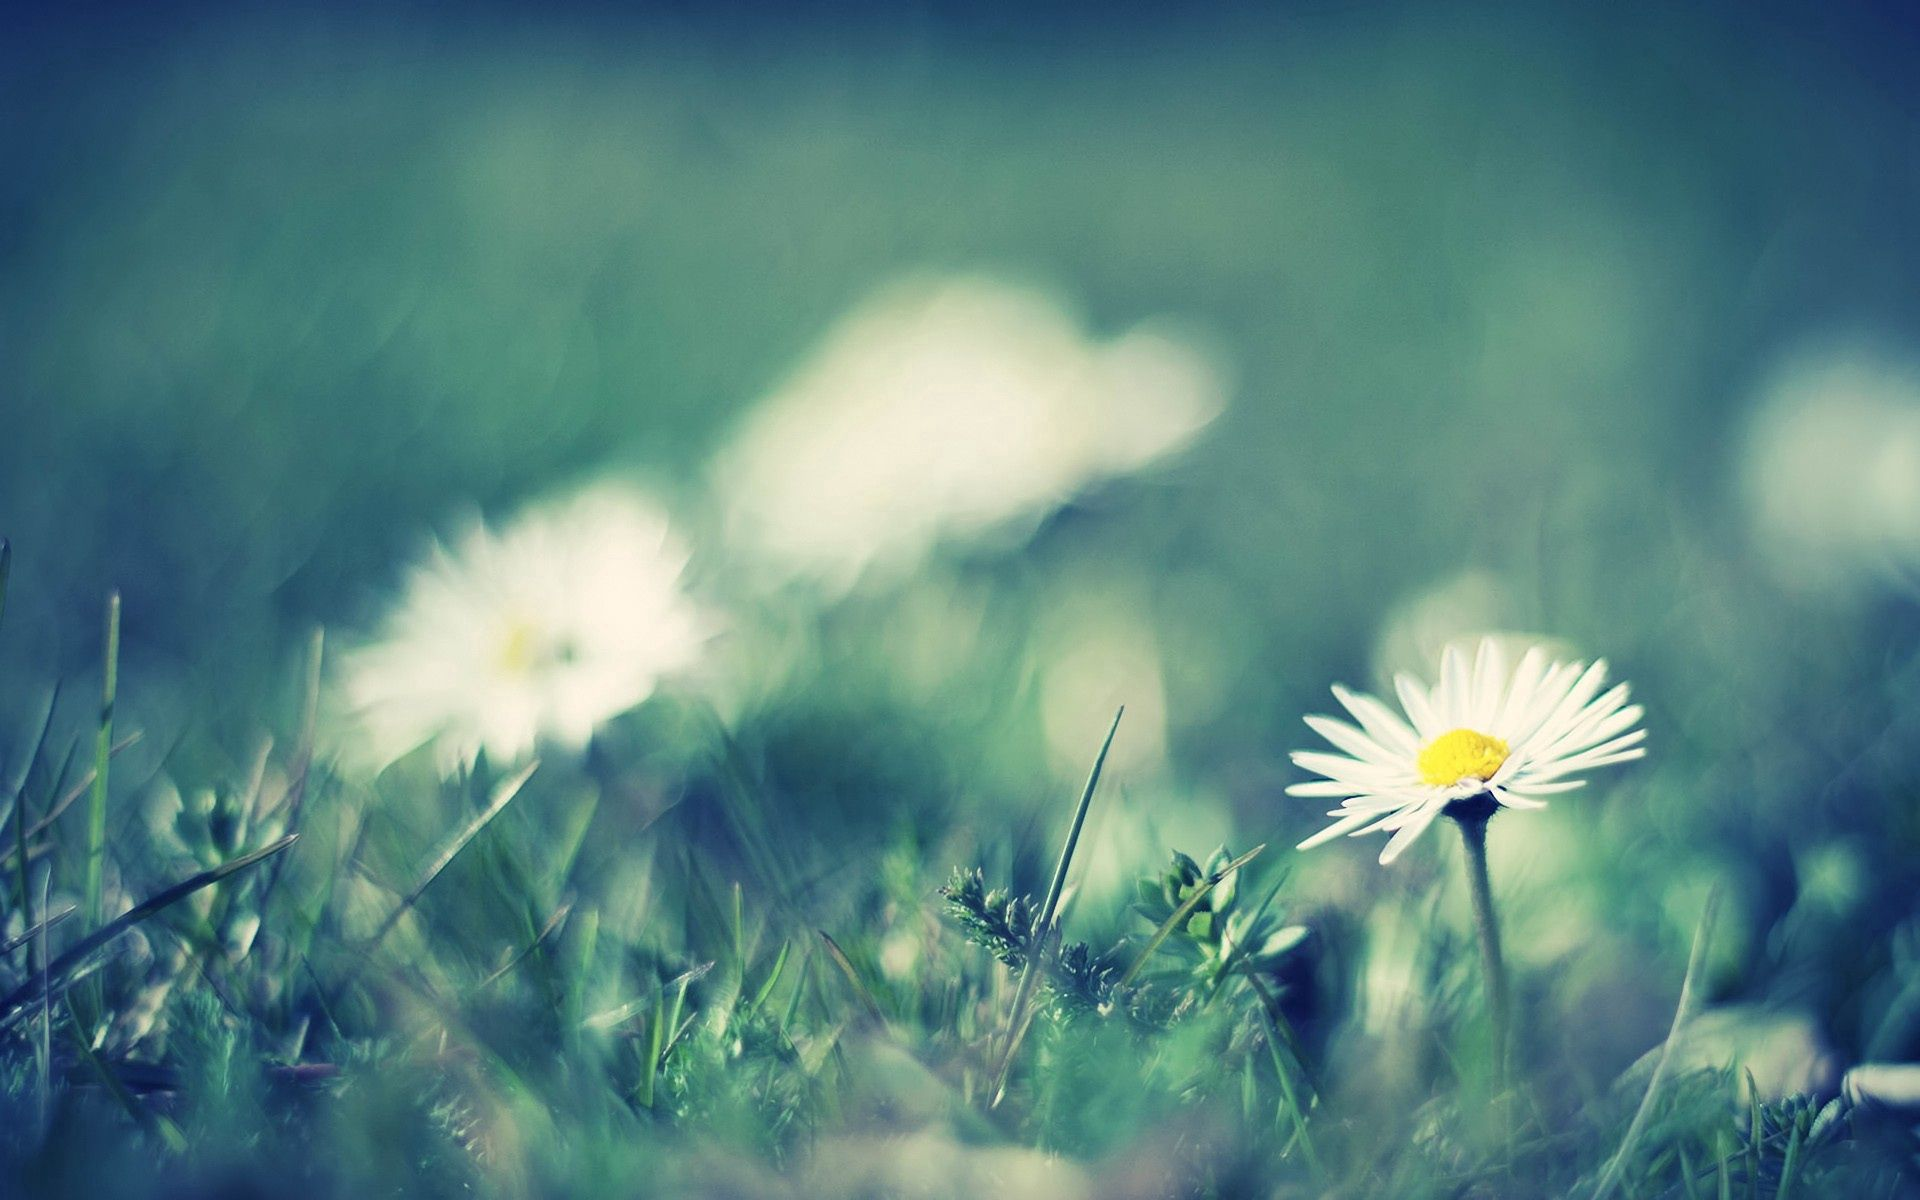 116027 download wallpaper Macro, Camomile, Grass, Greased, Smeared, Field, Flowers screensavers and pictures for free